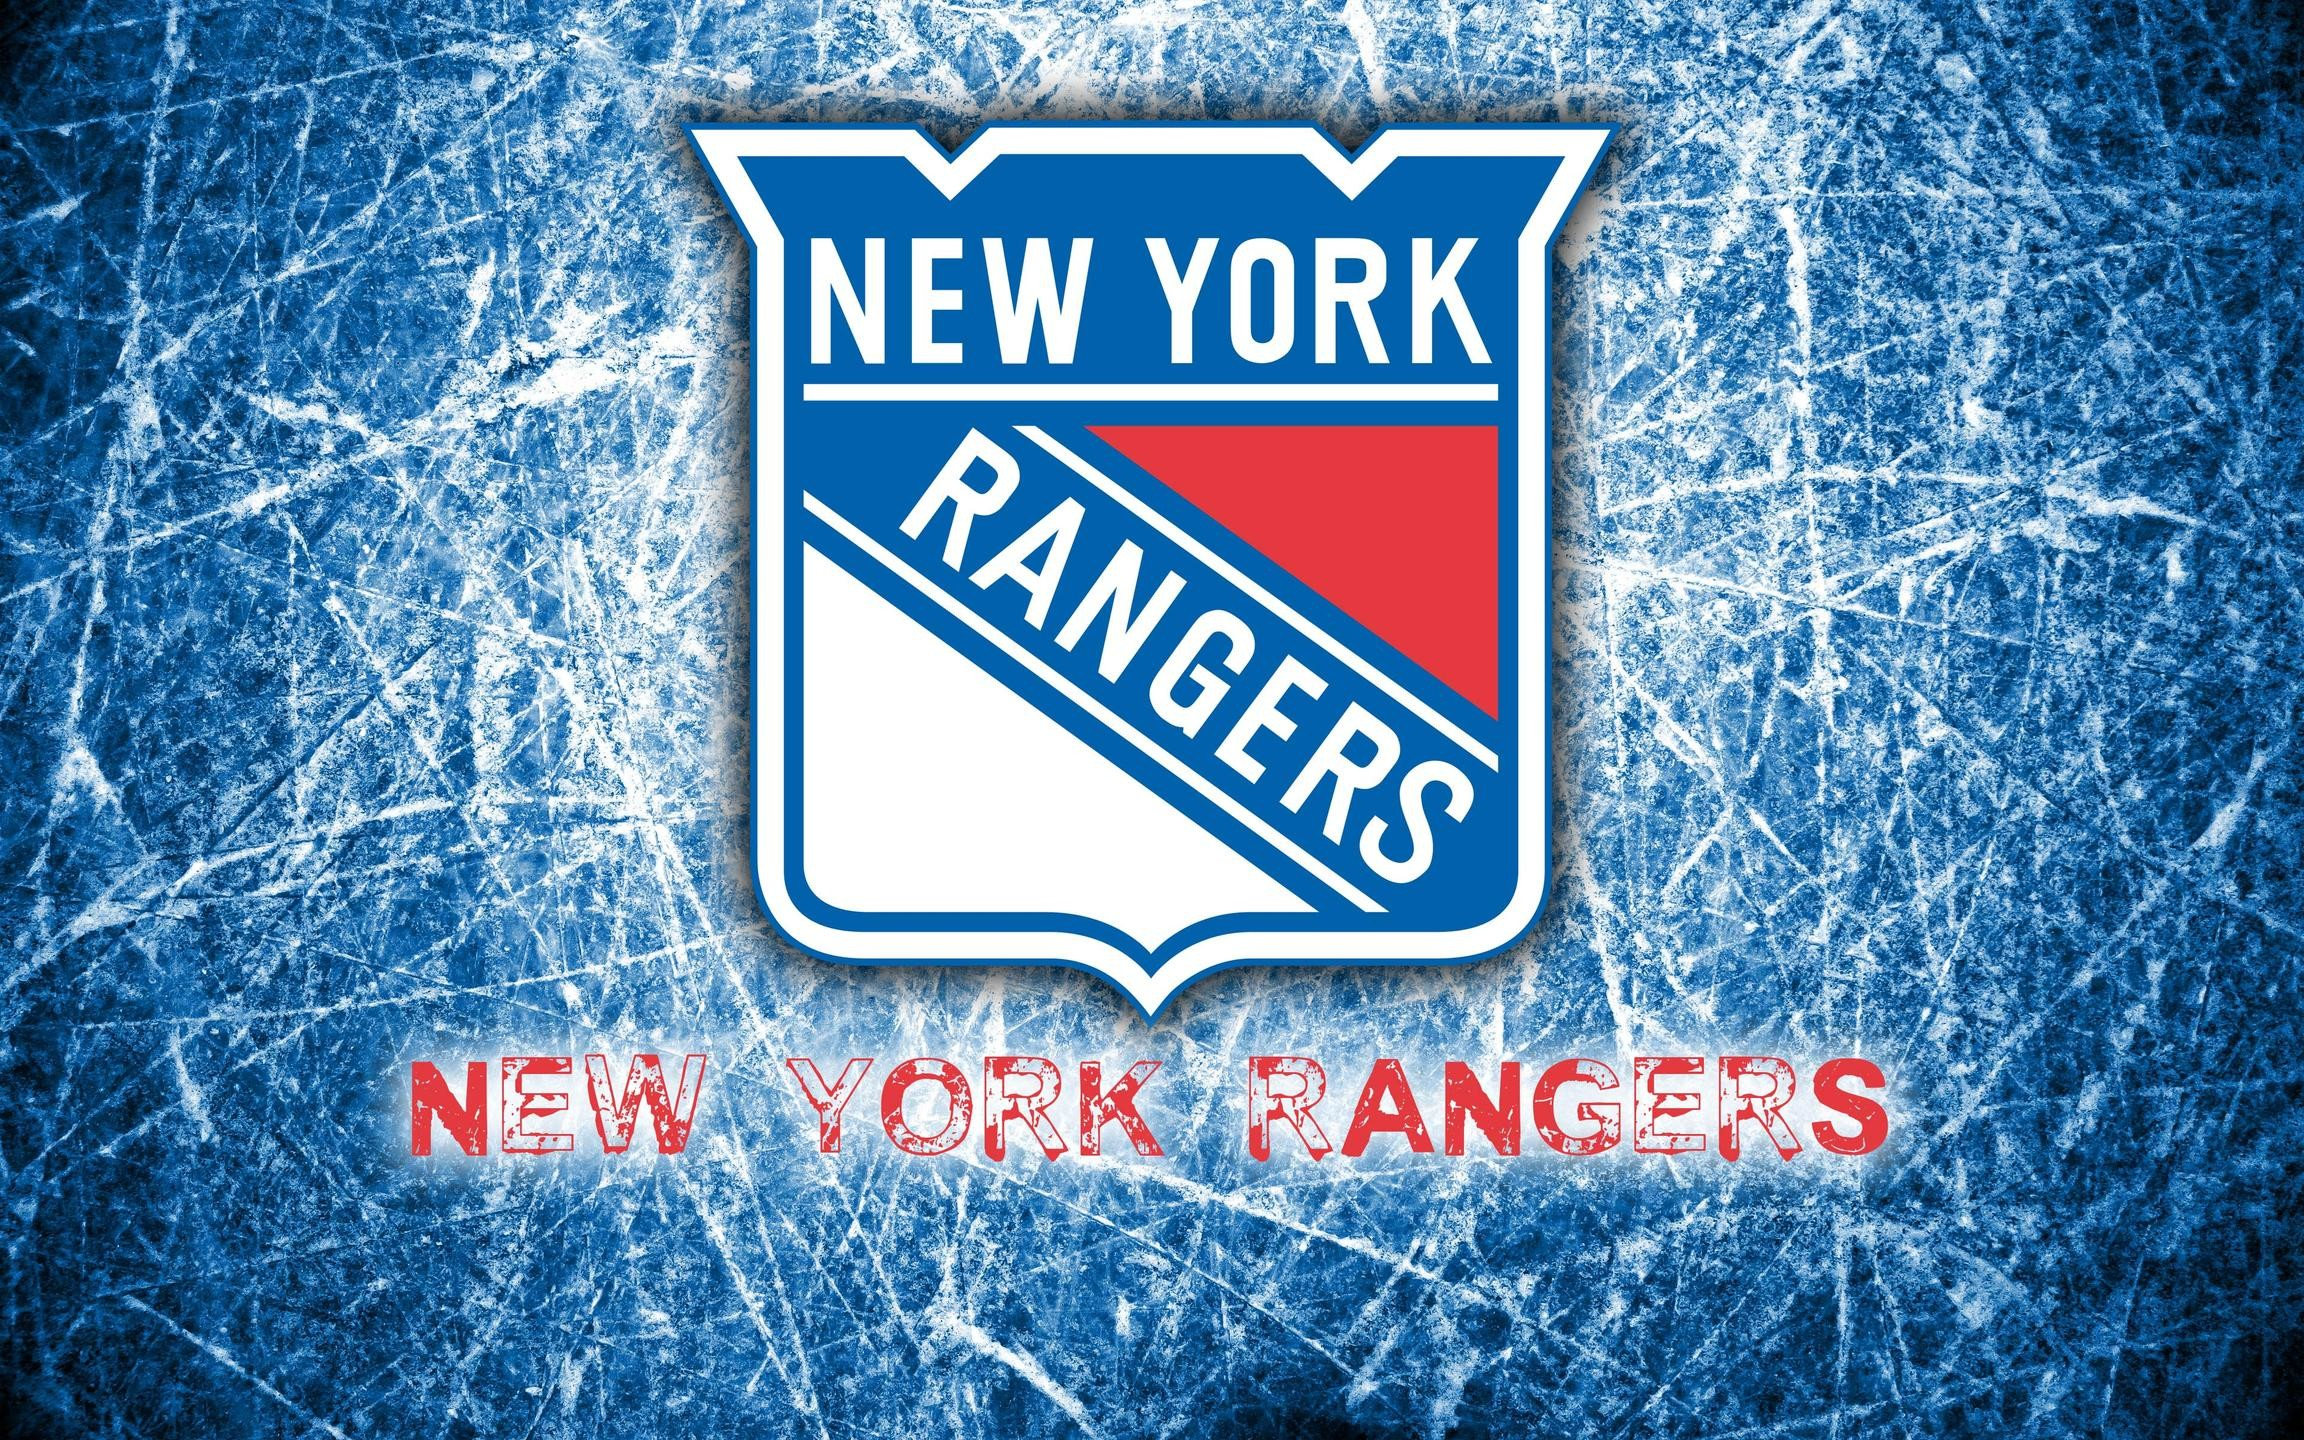 New York Rangers 2014 Logo Wallpaper Wide or HD | Sports Wallpapers